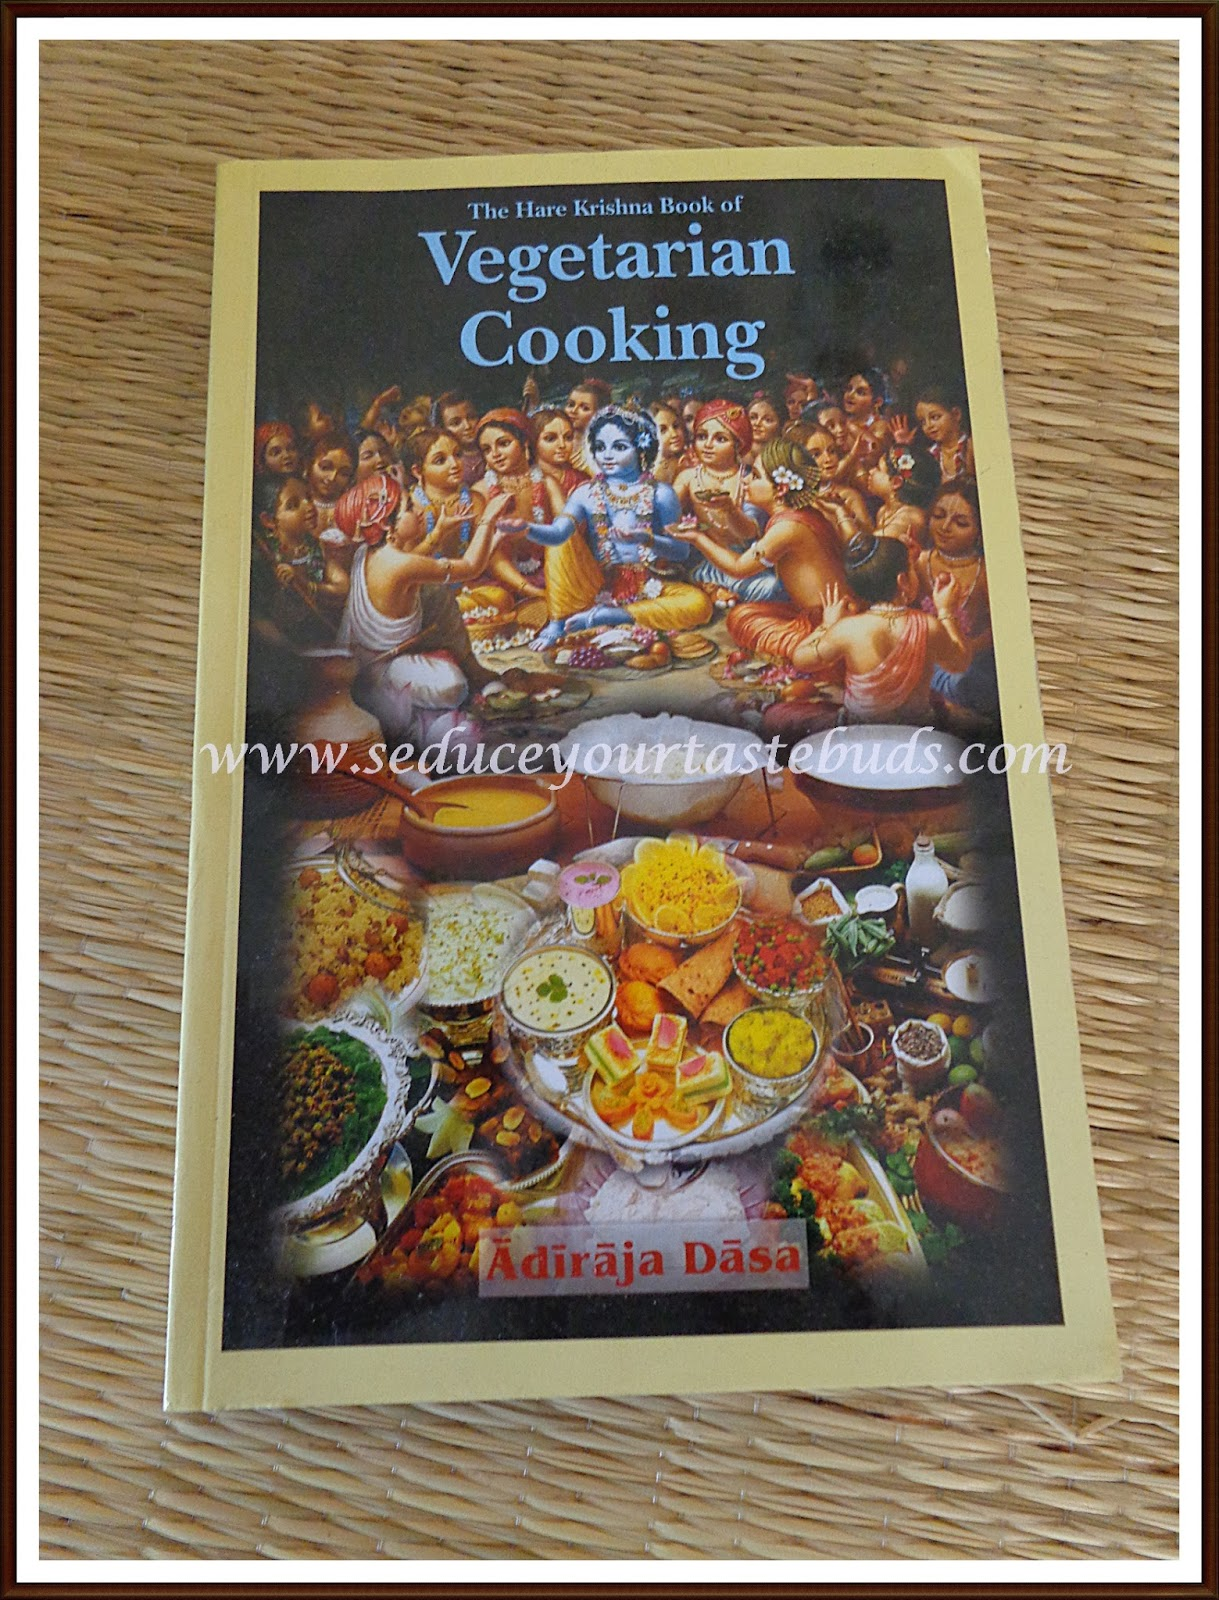 Fr 5the hare krishna book of vegetarian cooking book review the hare krishna book of vegetarian cooking by adiraja dasa is a baktivedanta book trust publication forumfinder Images